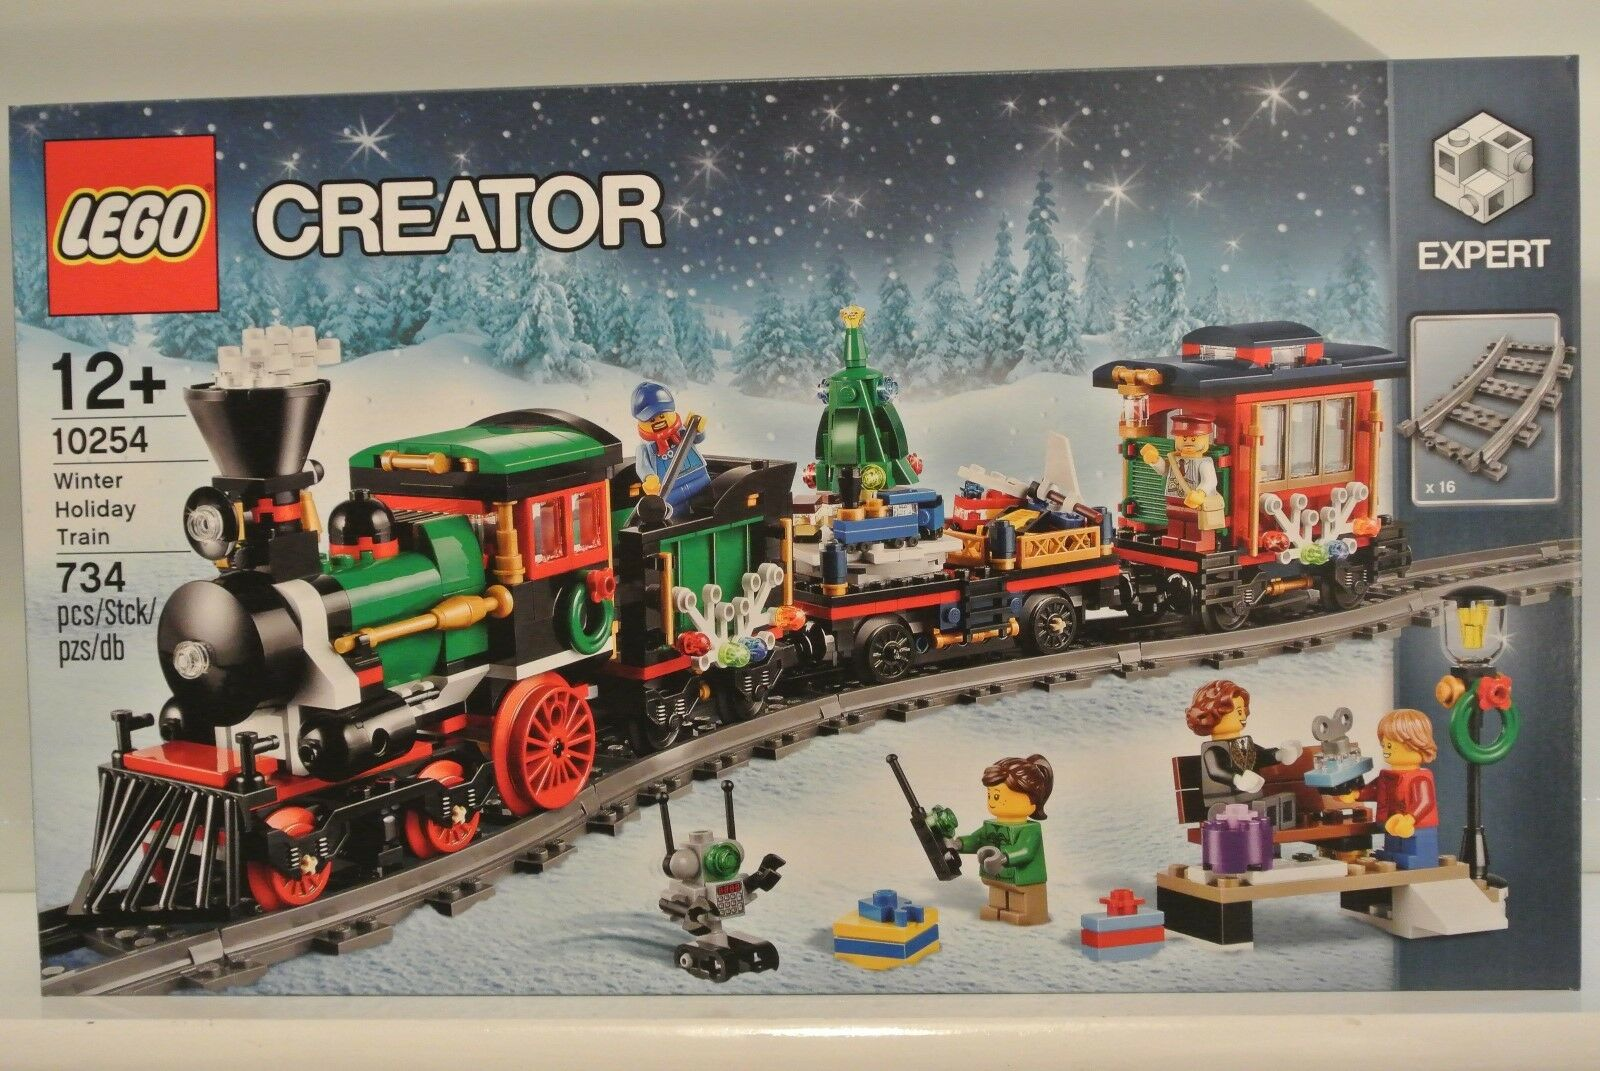 LEGO 10254 Creator - Winter Holiday Train - Great Christmas Present - BNISB